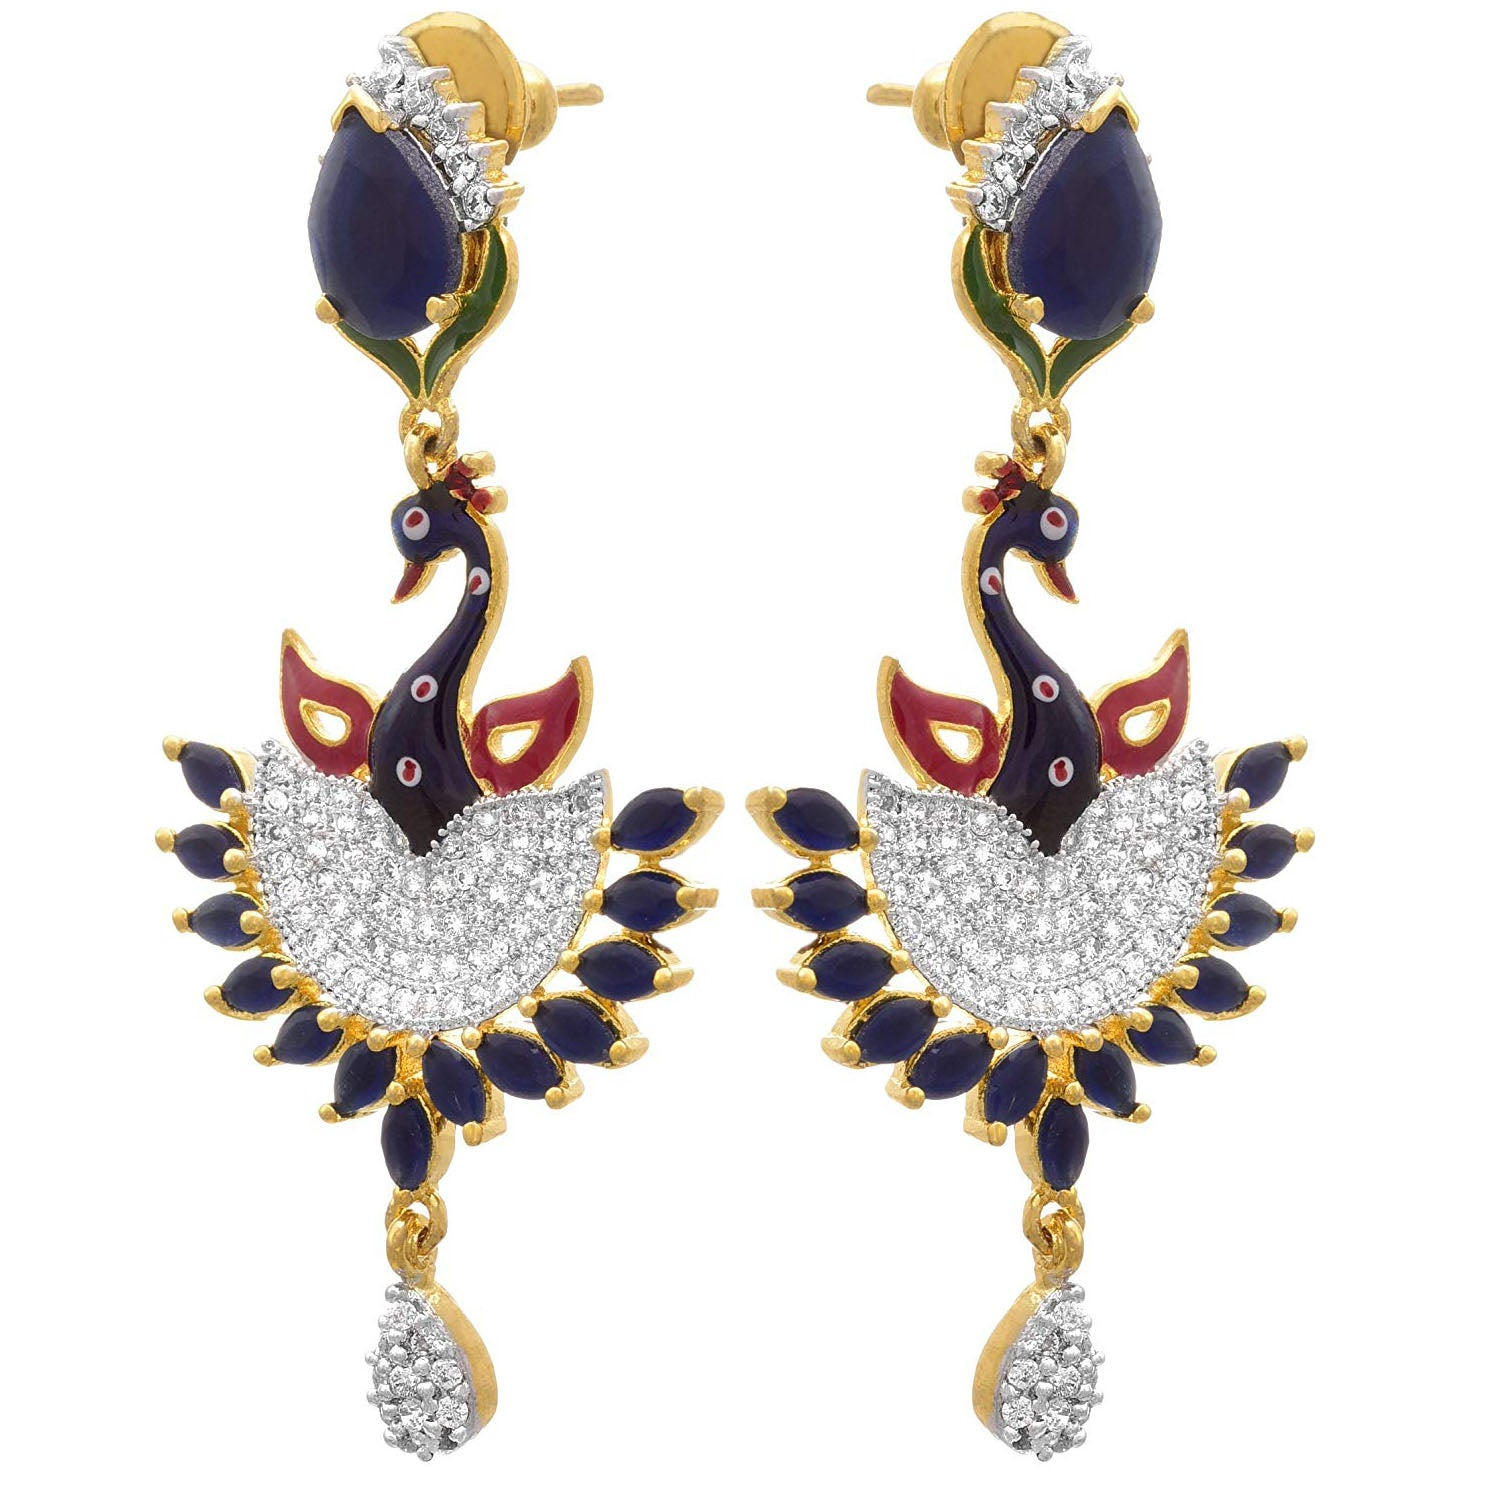 JFL - Traditional Ethnic One Gram Gold Plated Meenakari Peacock Blue Cz Diamond Designer Earring for Girls and Women.